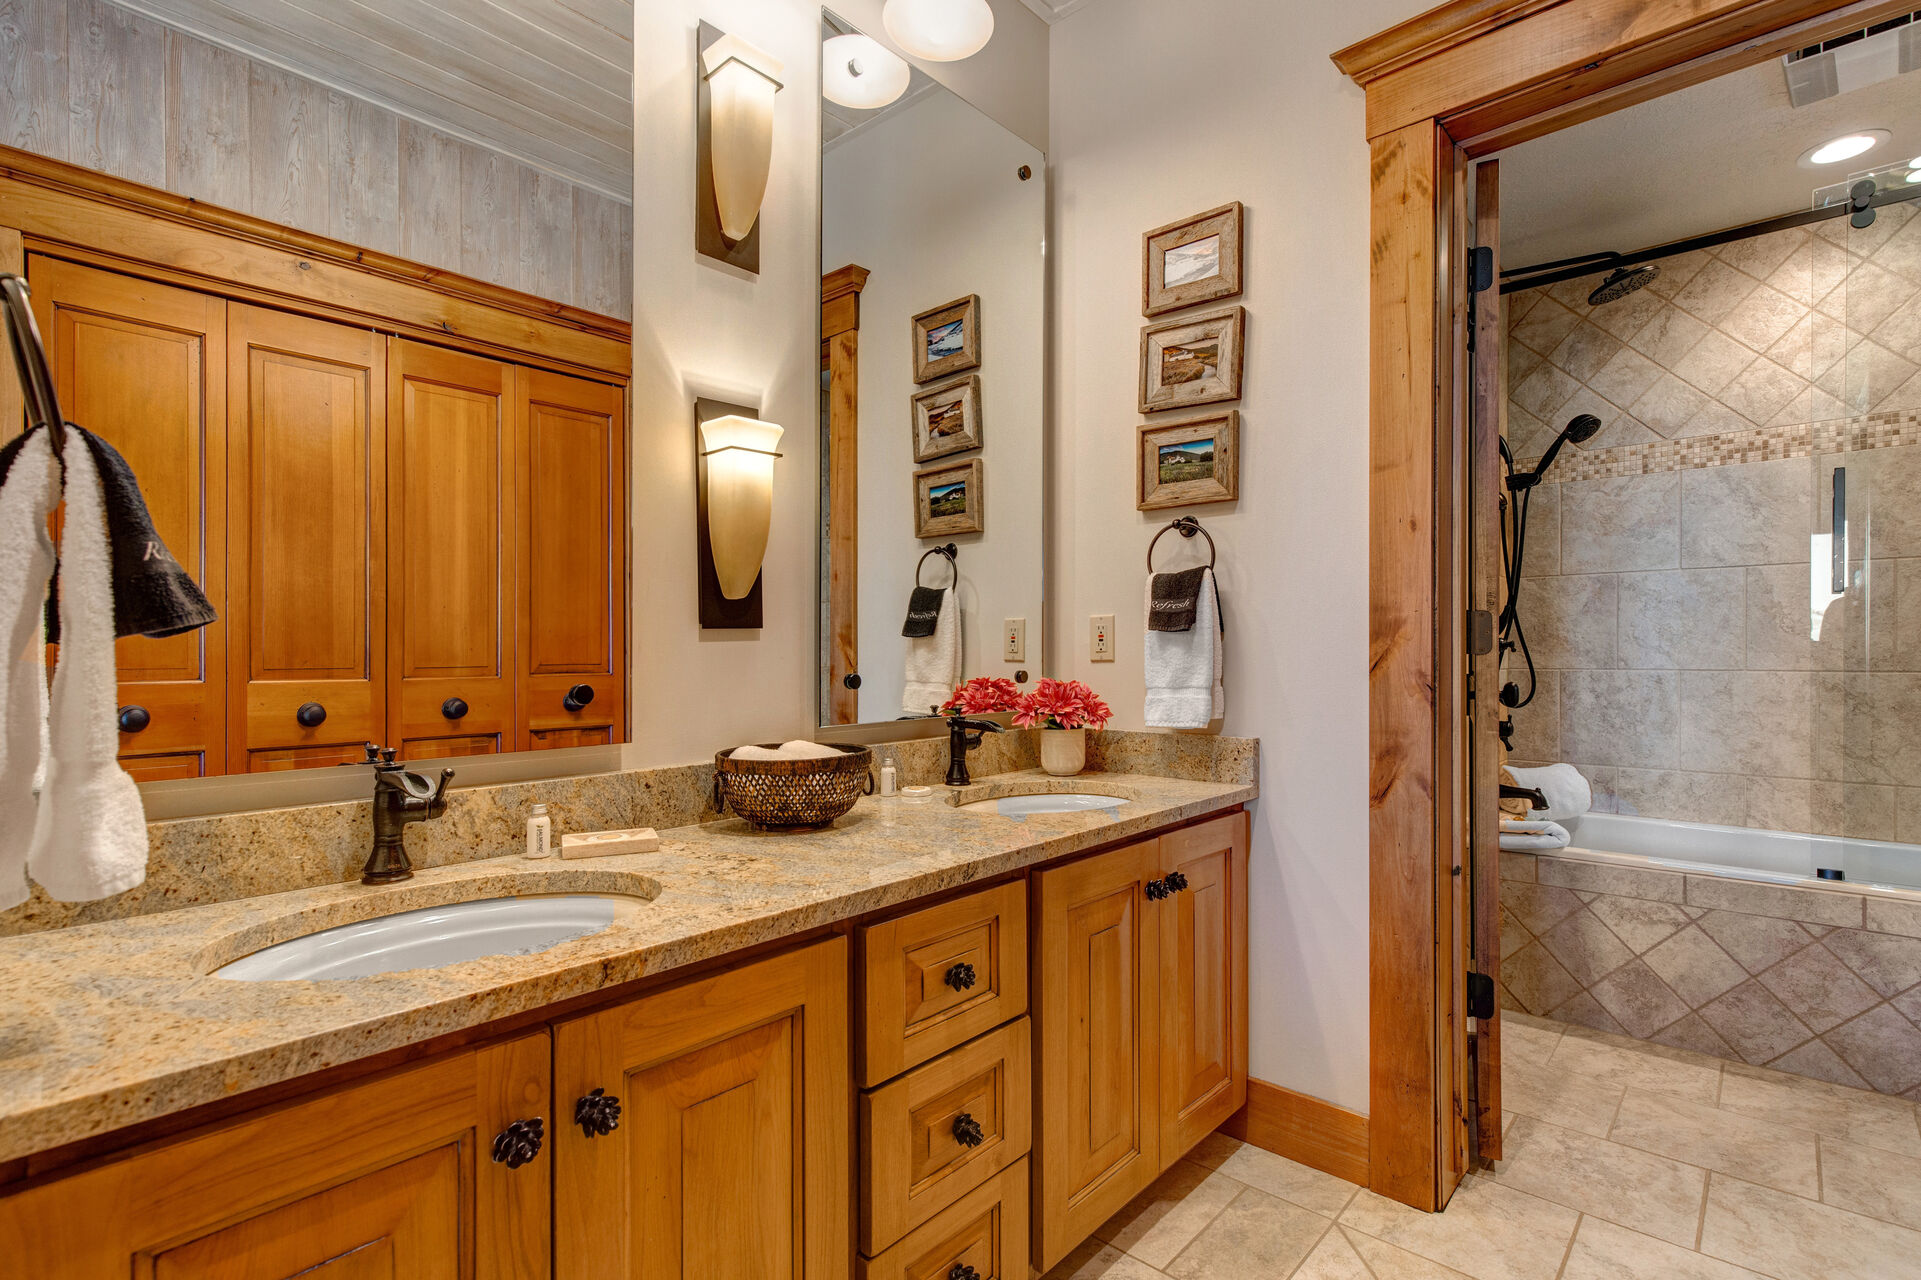 Master Bath 4 with Dual Stone Counter Sinks and a Separate Tub/Shower Combo with Multiple Shower Heads